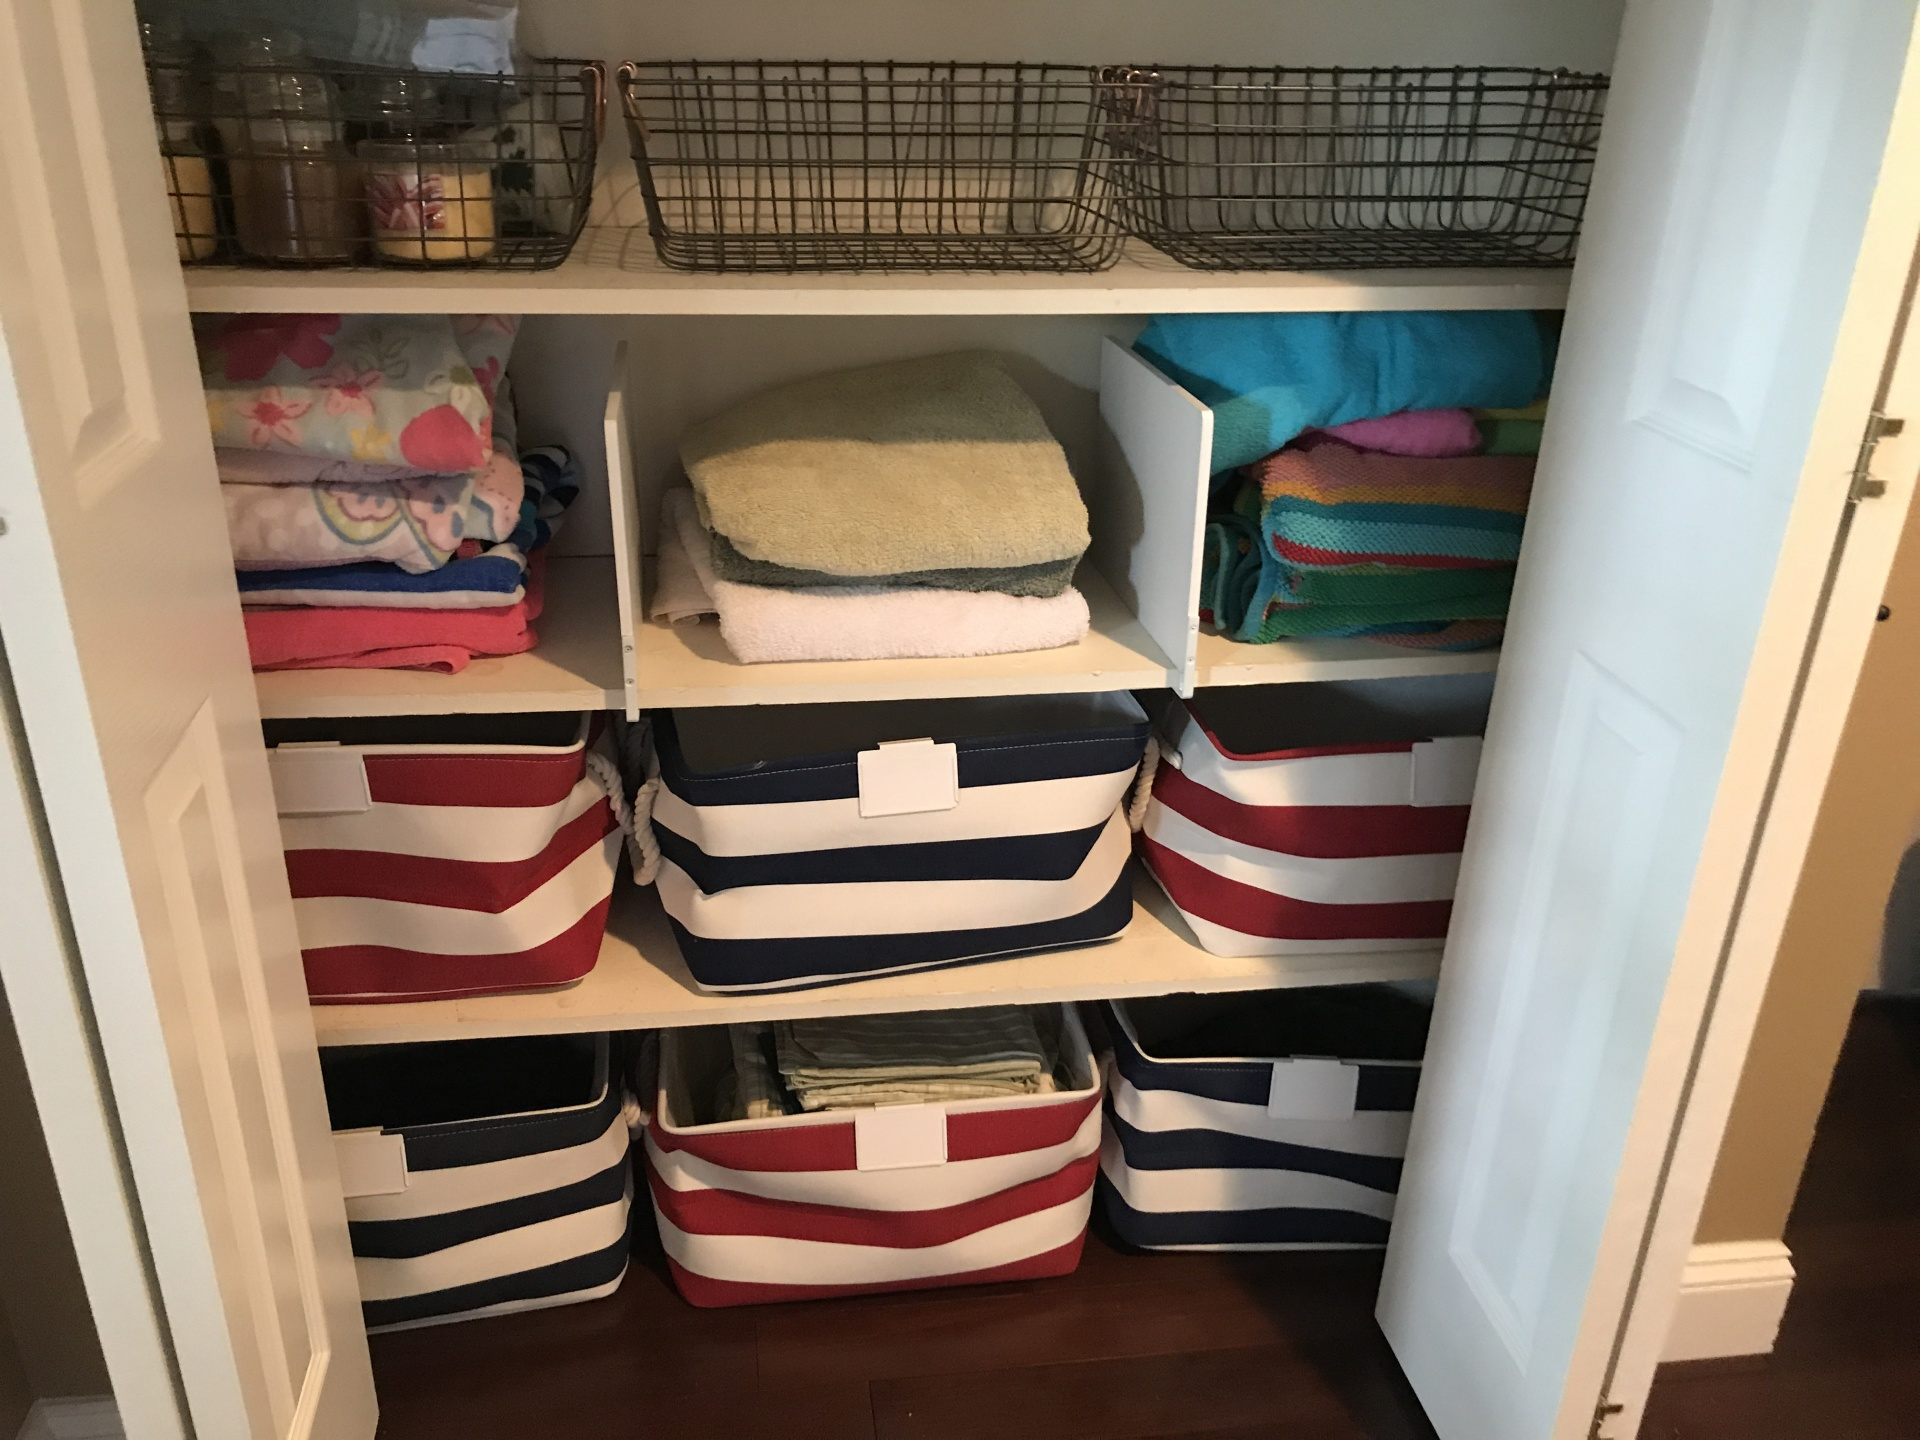 SHEETS!  In those beautiful striped baskets!  And towels neatly separated with shelf dividers from Target.